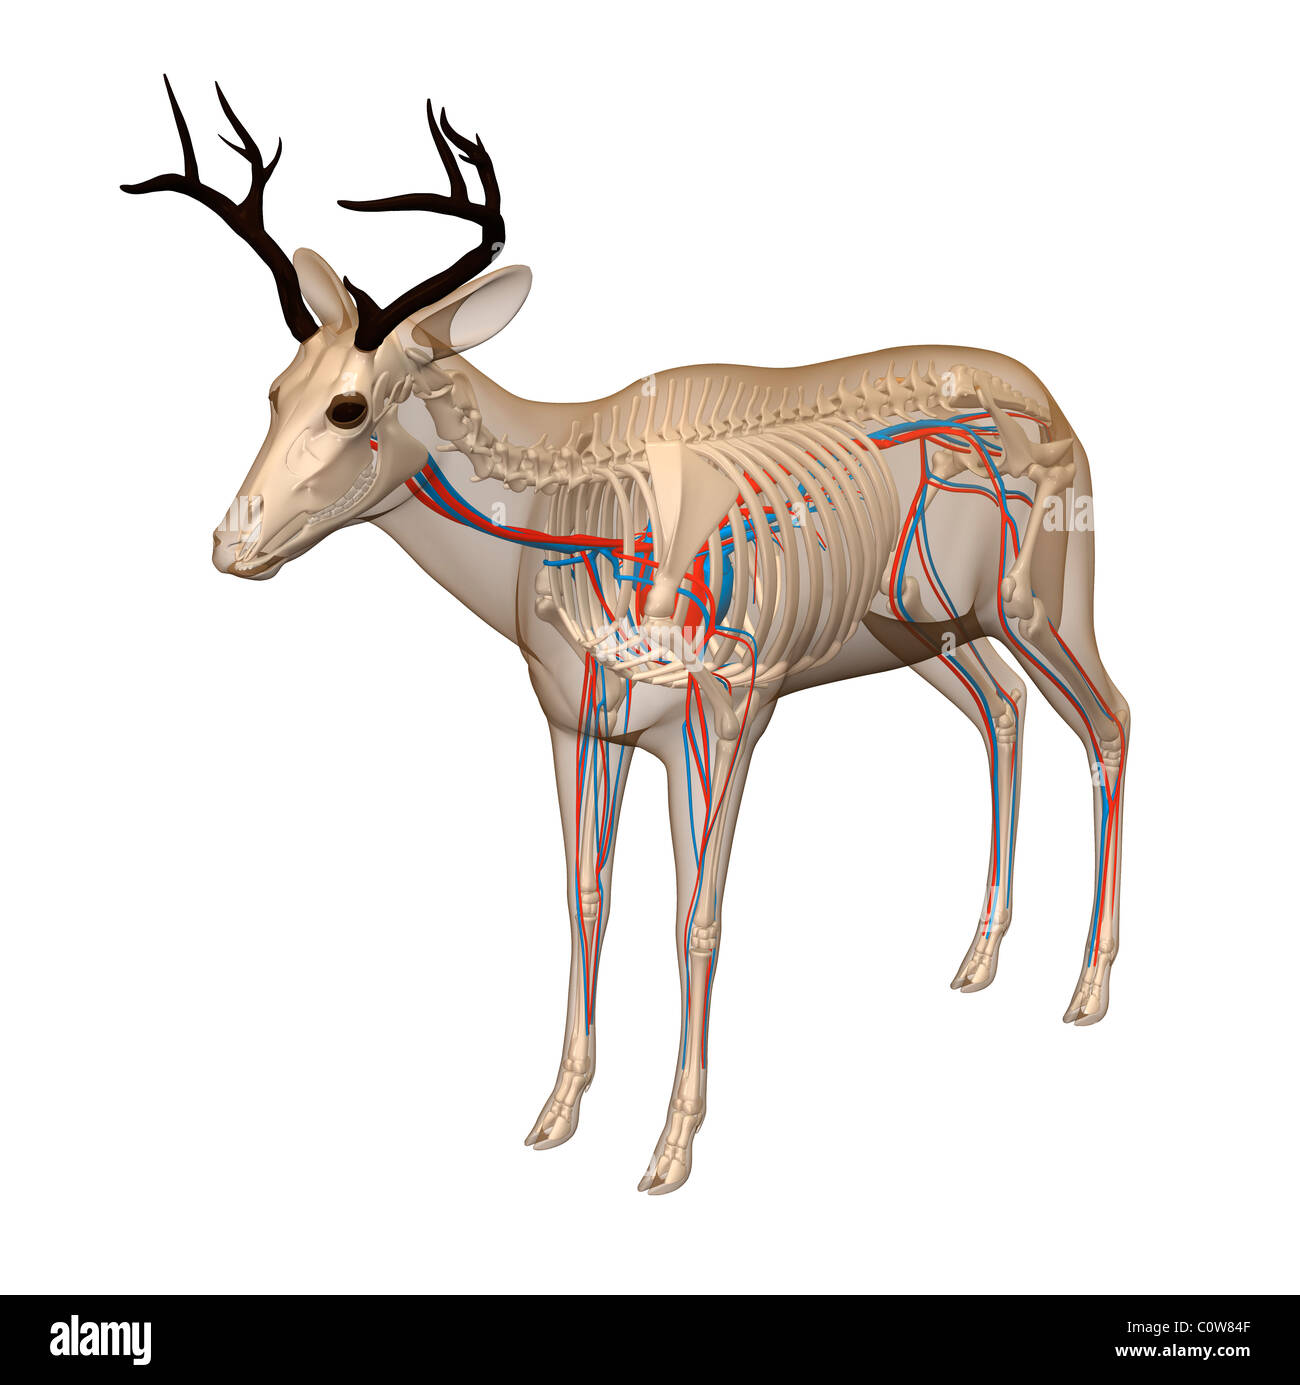 Anatomy Deer Cut Out Stock Images & Pictures - Alamy